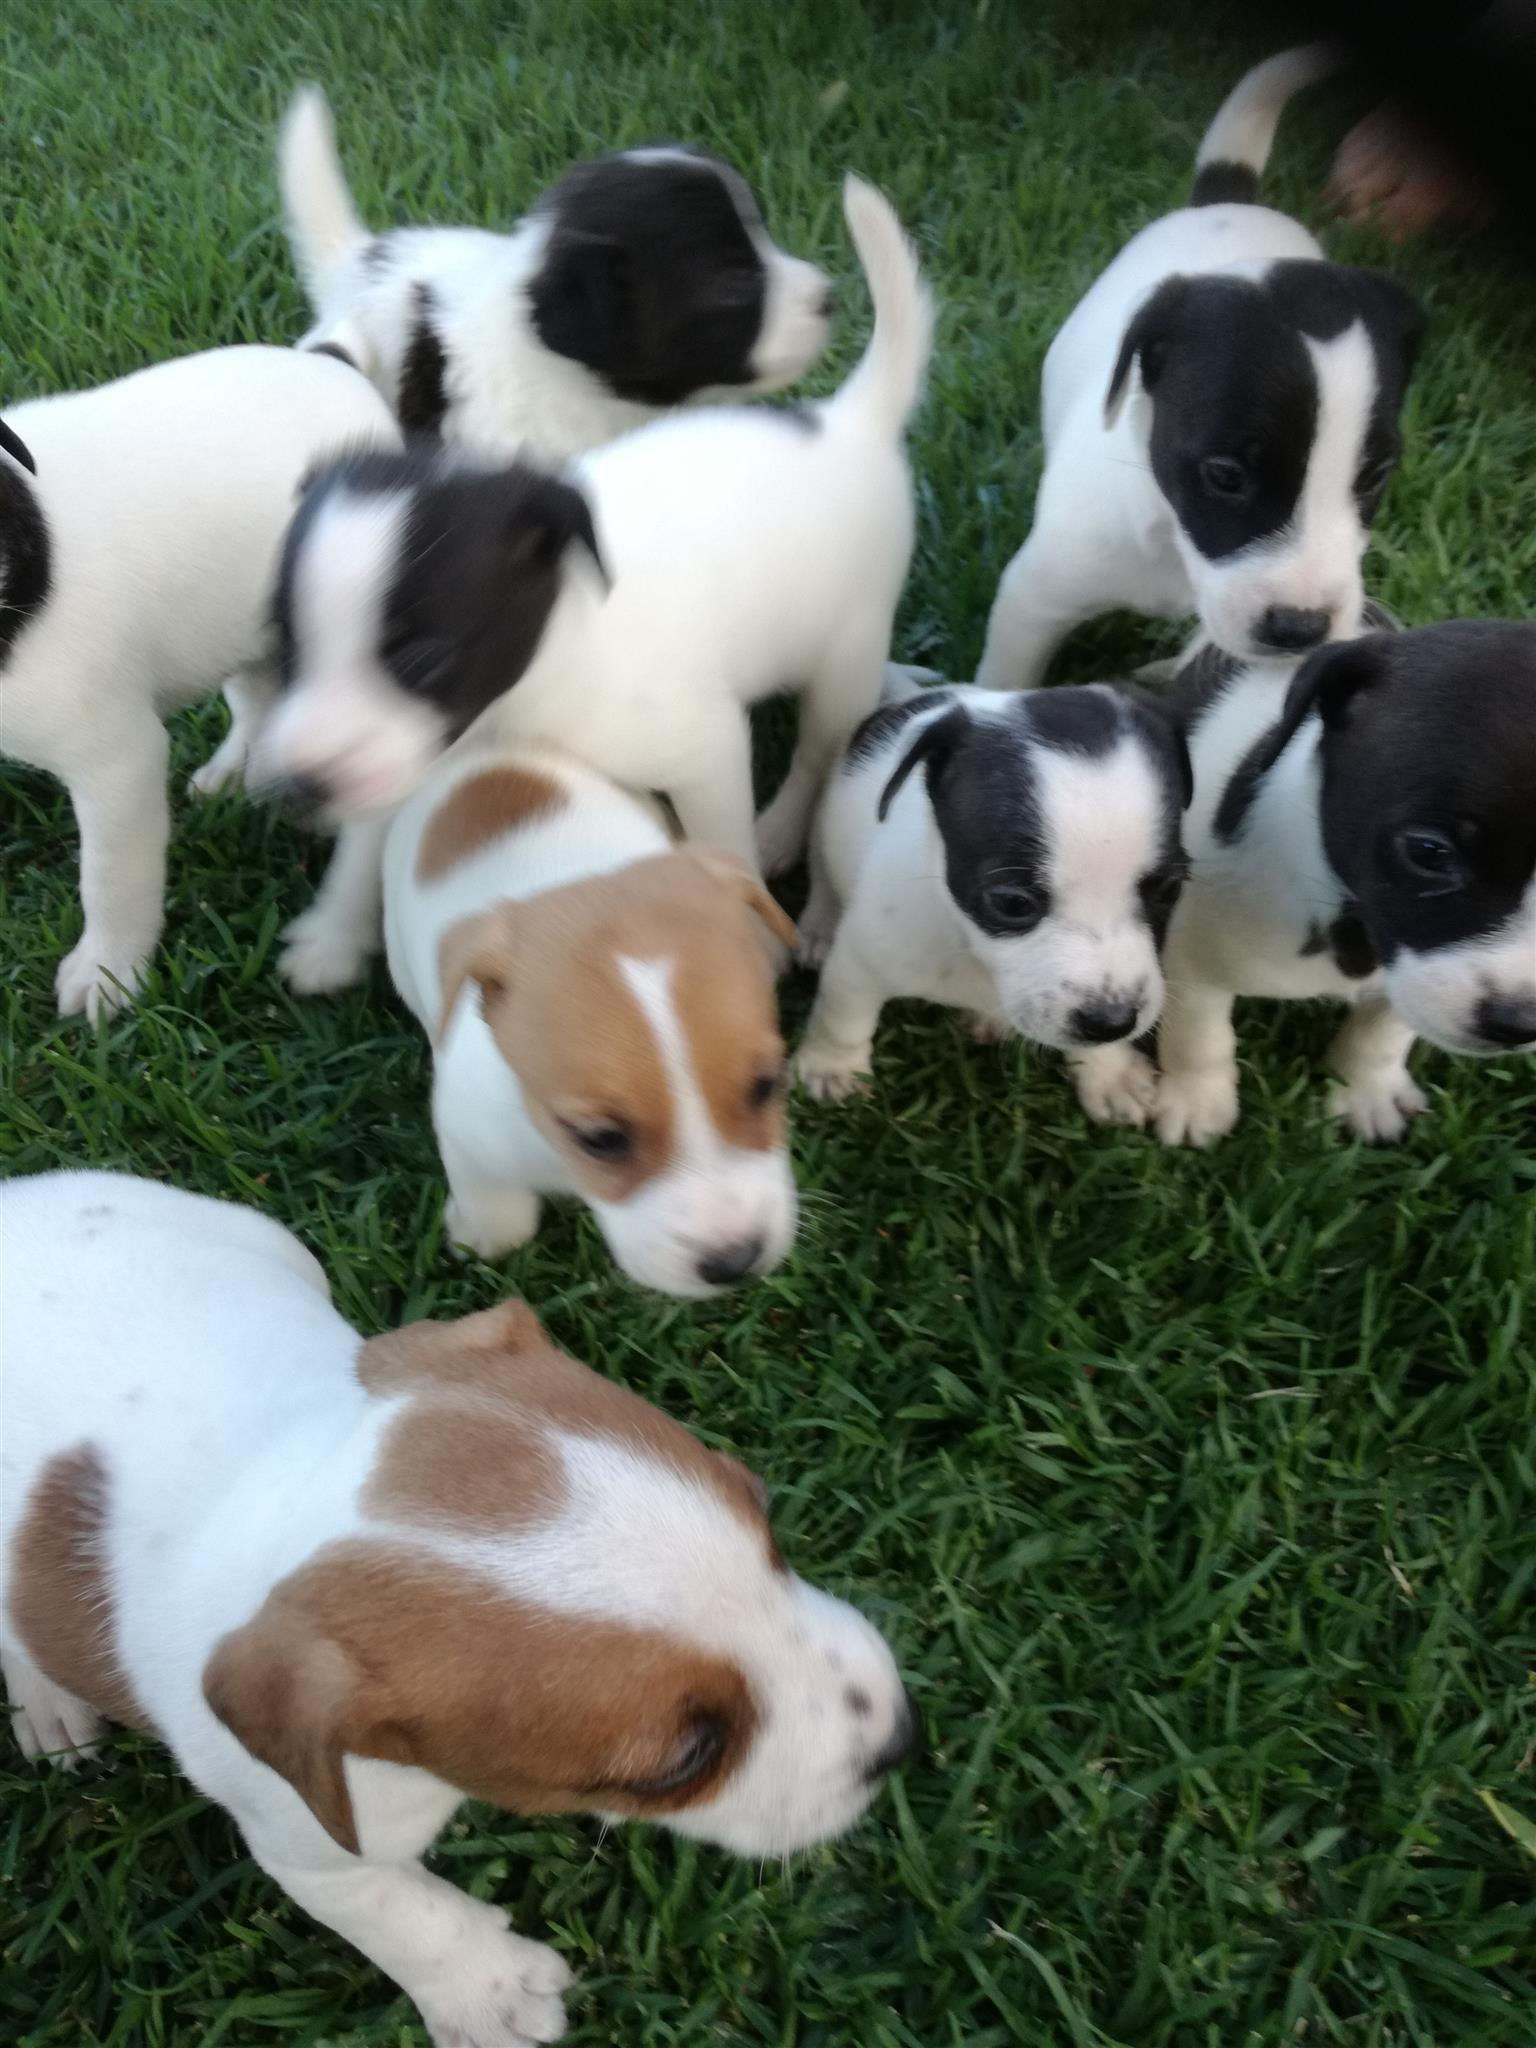 Jack Russell /Fox terrier puppies